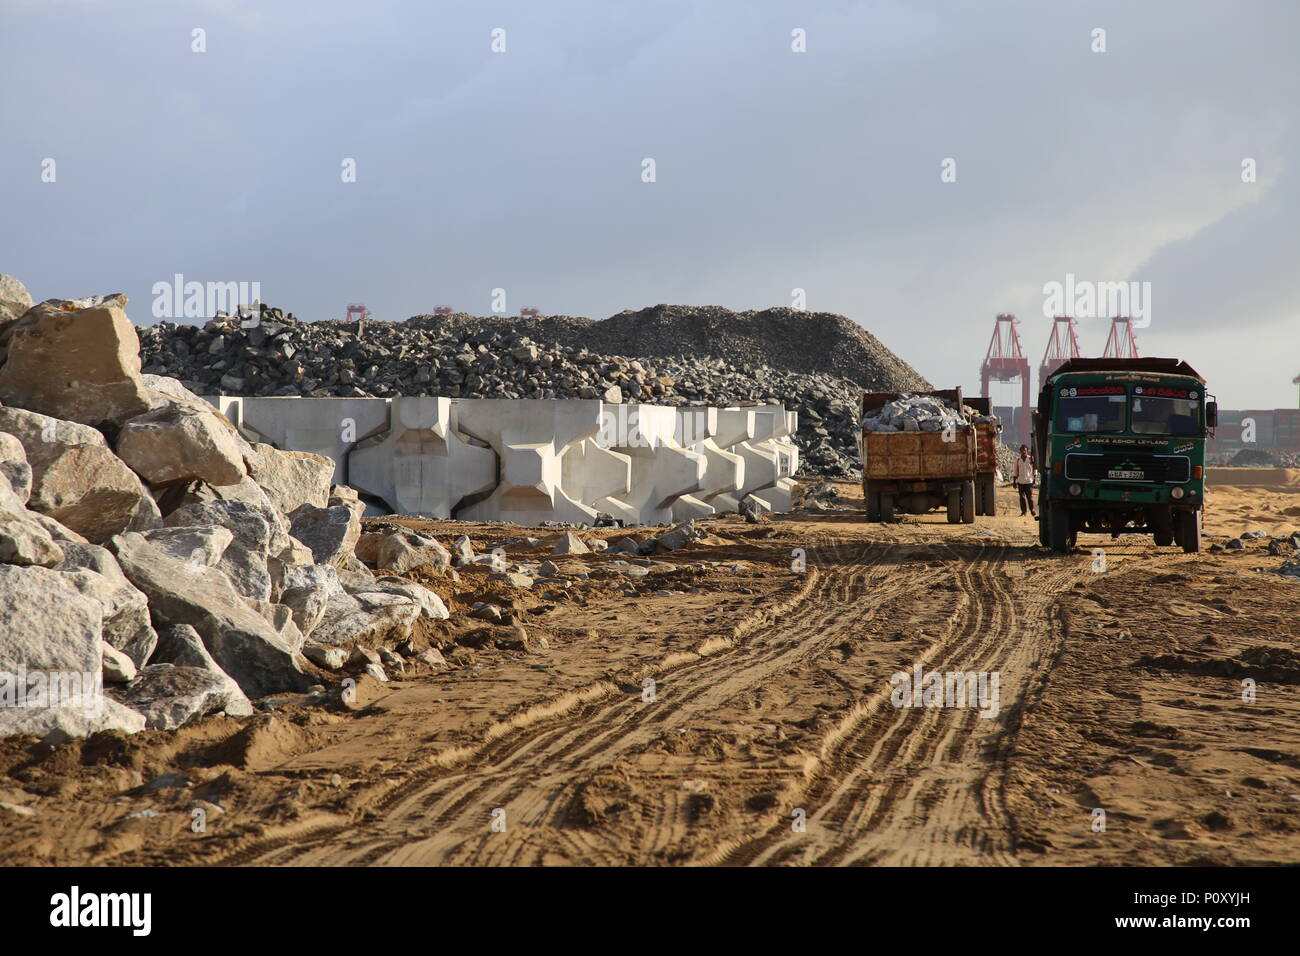 (180610) -- COLOMBO, June 10, 2018 (Xinhua) -- Stones are transported to the construction site of the Colombo Port City, Colombo, Sri Lanka, June 8, 2018. Spread over 269 hectares of land reclaimed from the sea adjacent to the present commercial district of Colombo, the Colombo Port City, co-developed by the Sri Lankan government and China's CHEC Port City Colombo (Pvt) Ltd under the Belt and Road Initiative, will in future become a commercial, financial, residential and international entertainment hub in the Indian Ocean region. TO GO WITH Feature: Story of stone in Colombo Port City (Xinhua/ Stock Photo